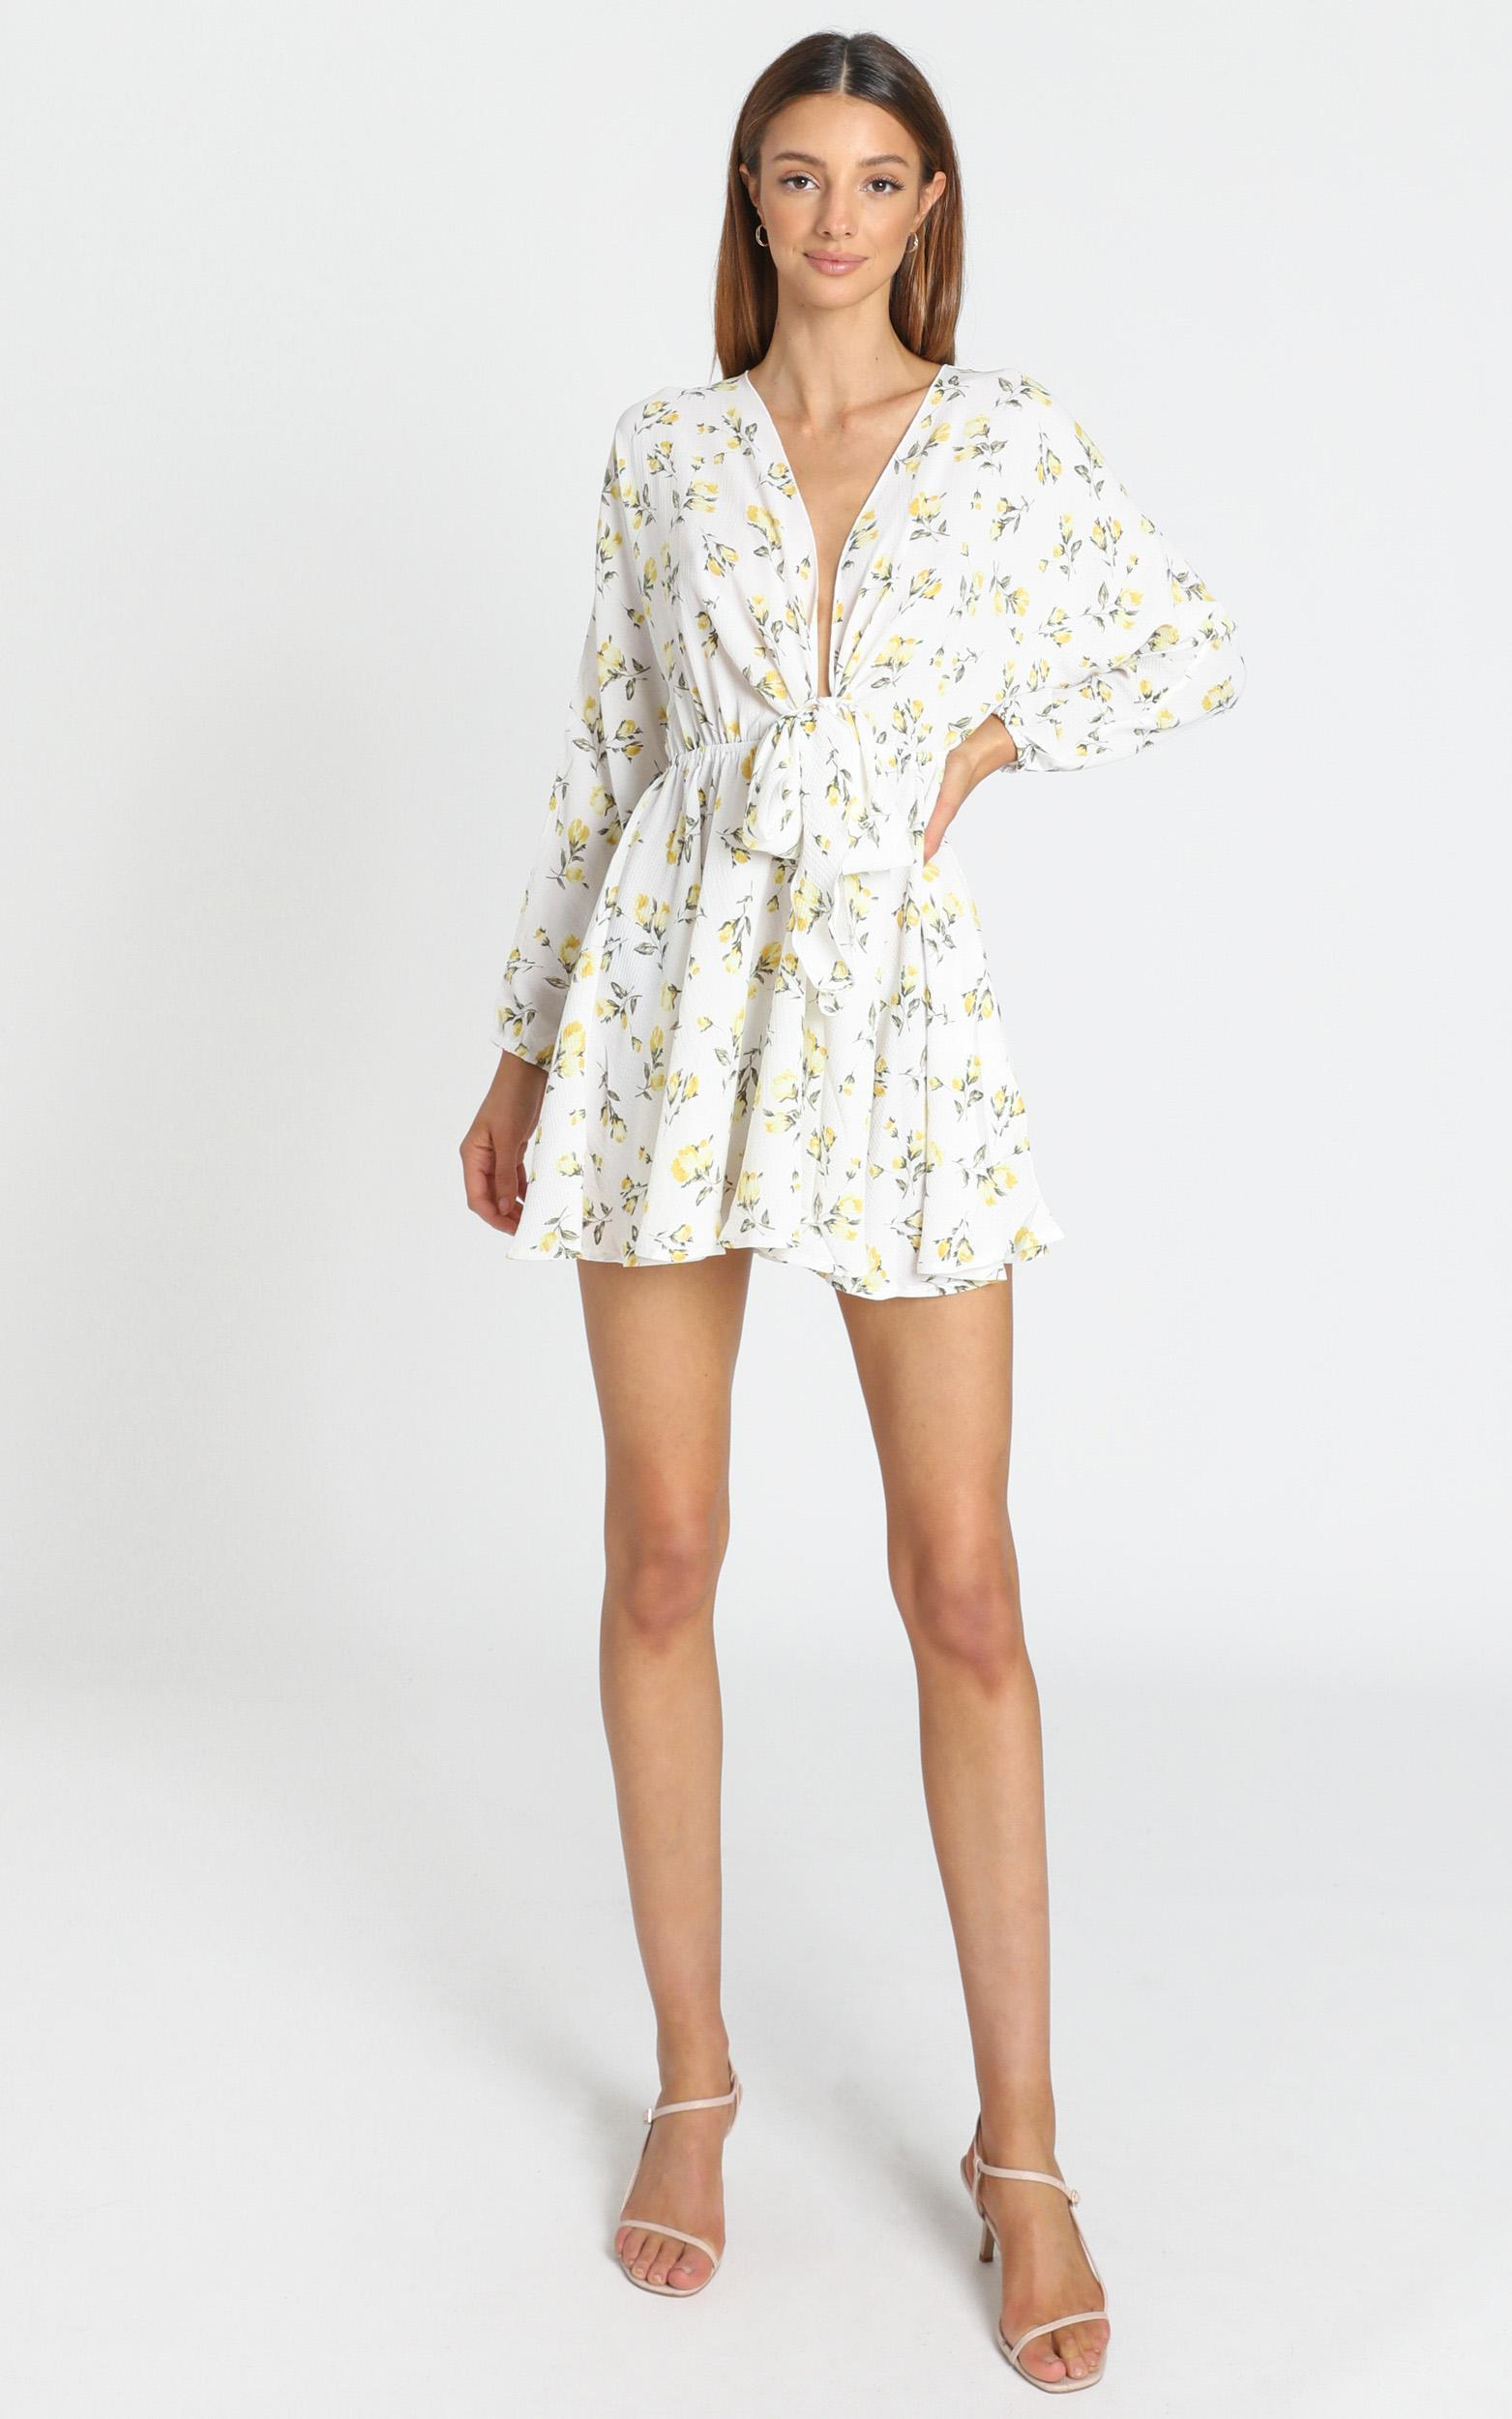 Lone Star Dress in White Floral - 06, WHT1, hi-res image number null